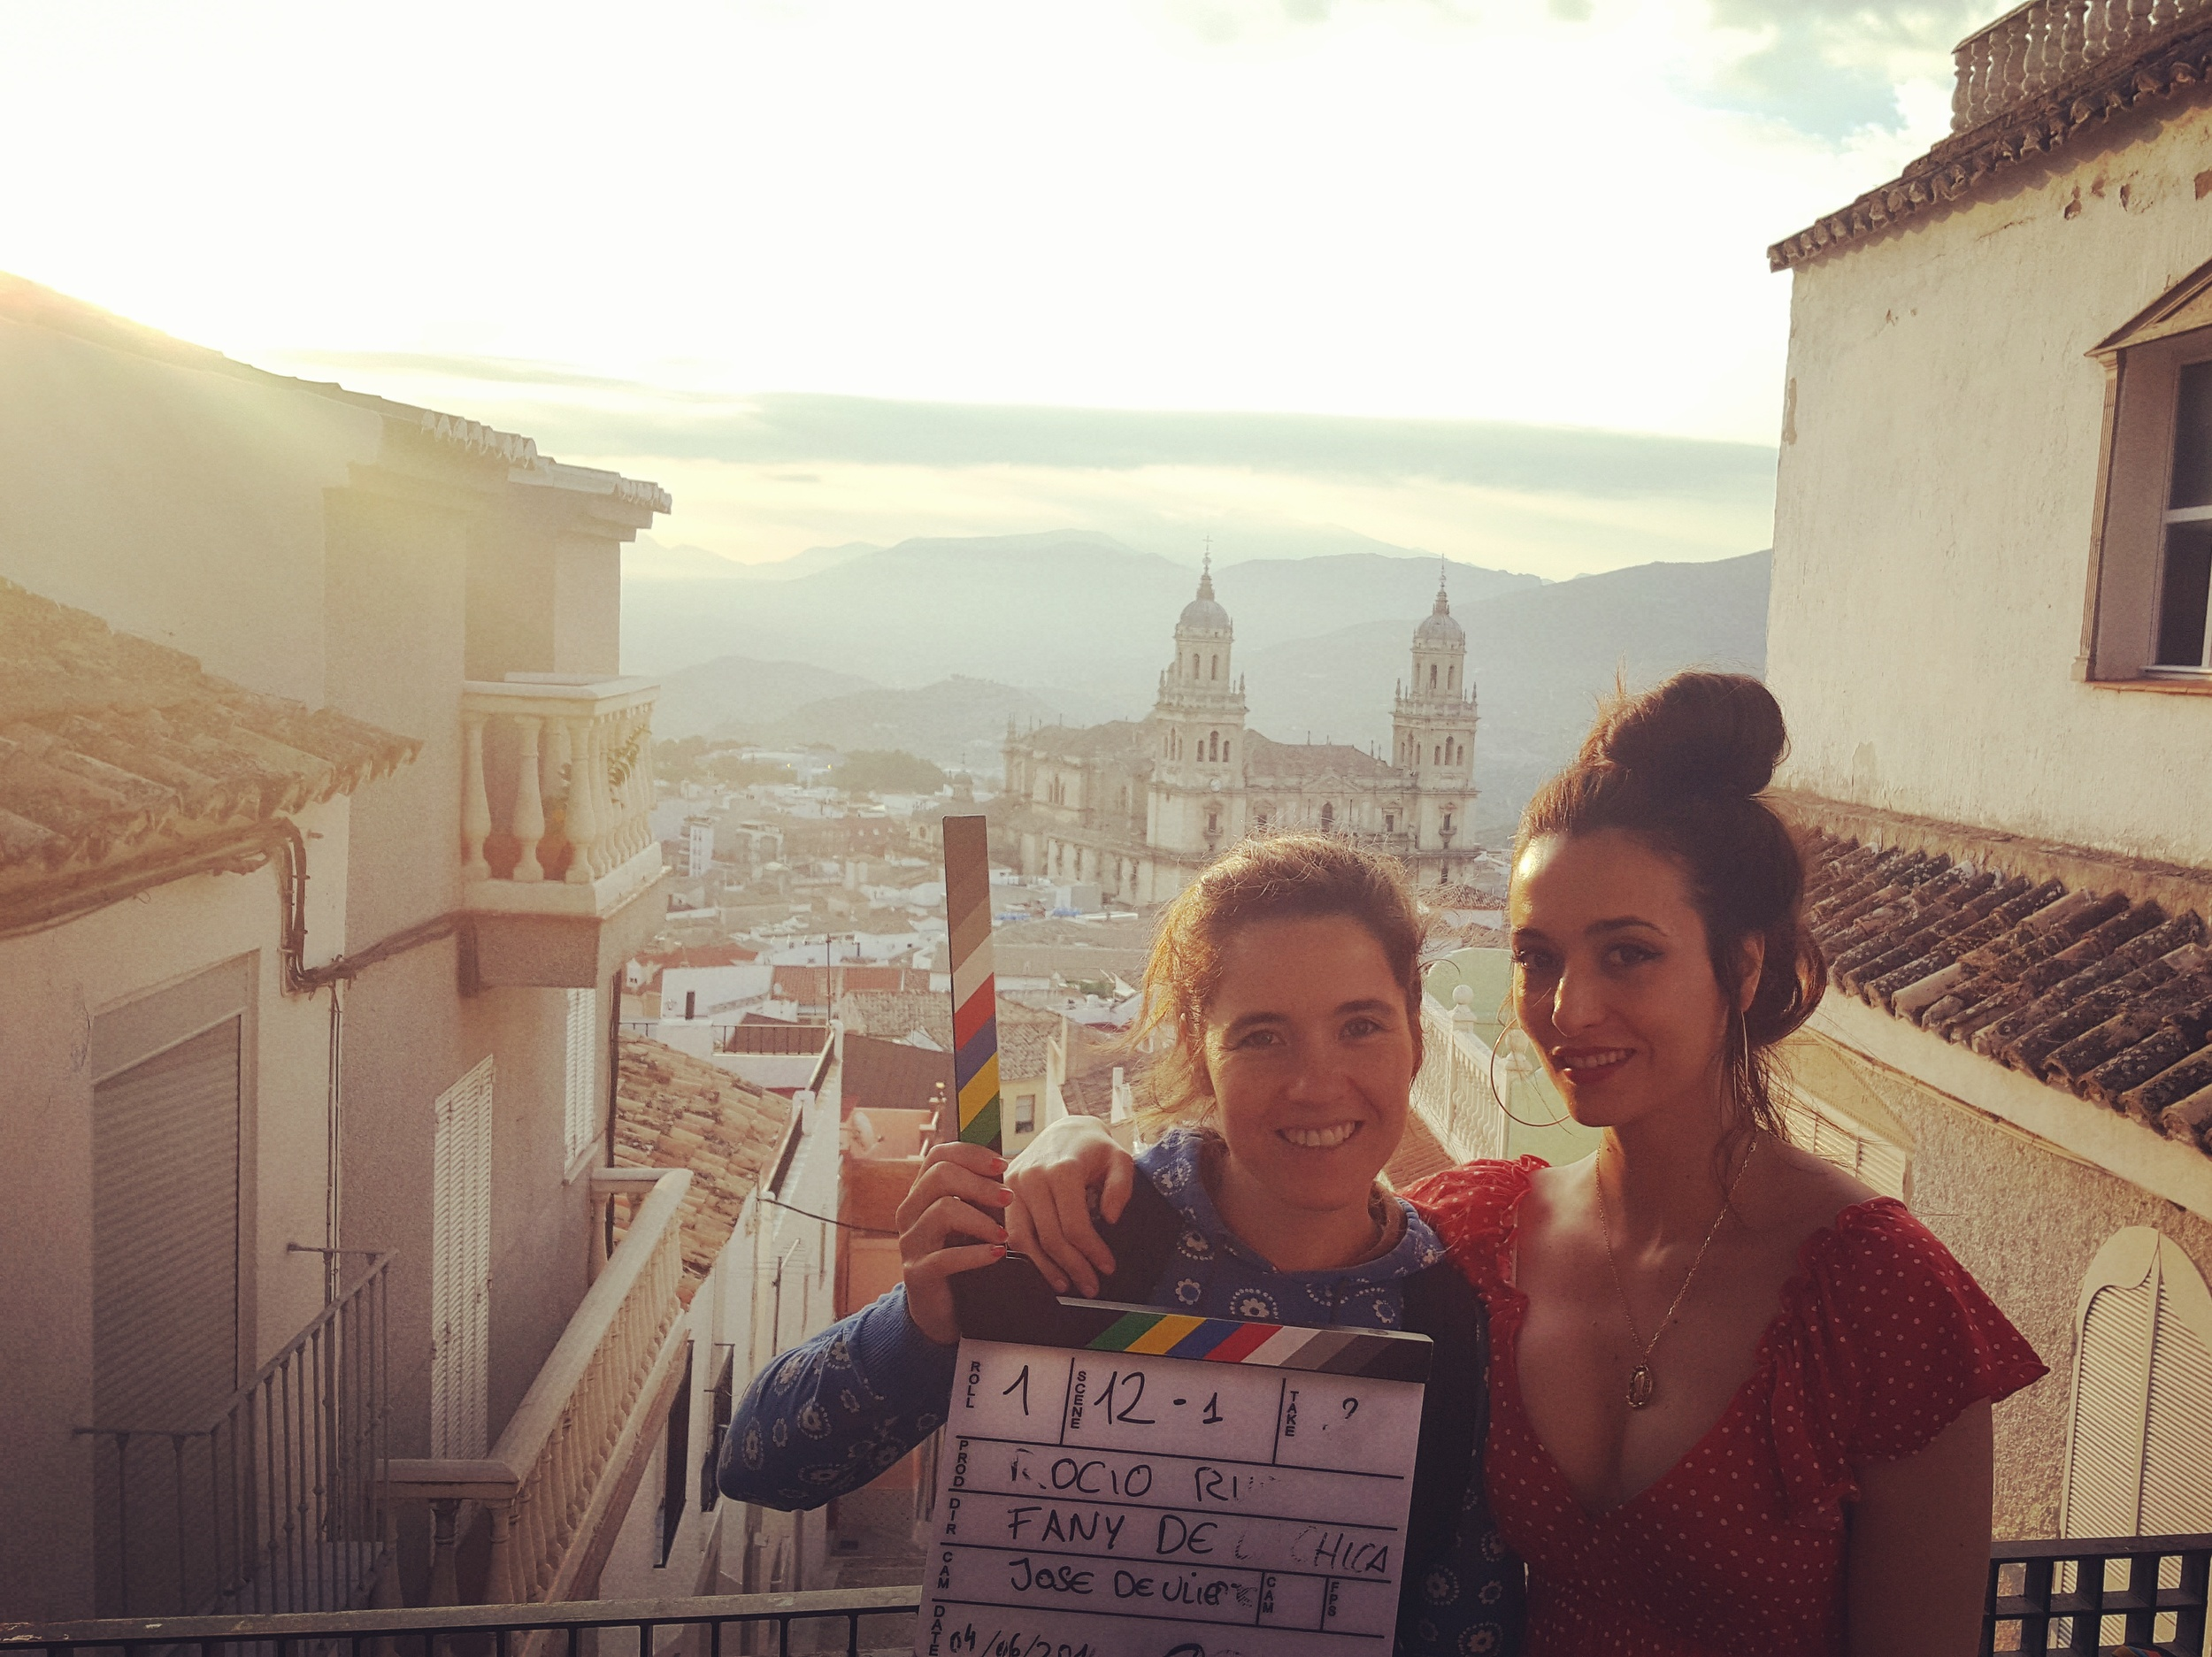 With director Fany de la Chica, in Jaén, Spain. First day of shooting   A La Deriva.